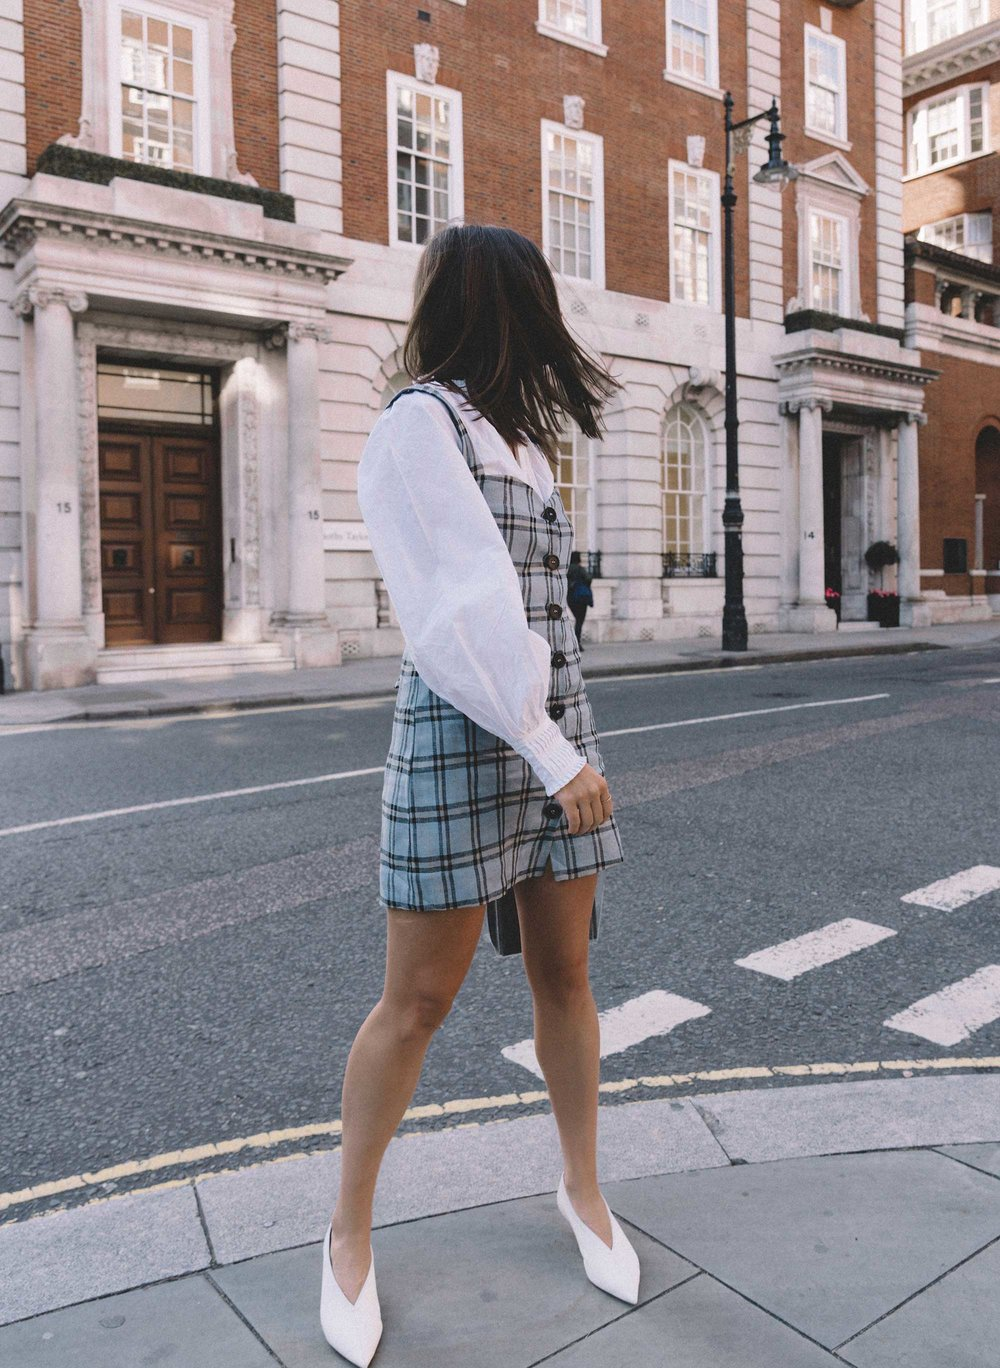 Reformation plaid button front mini dress, Joie Rickelle white blouse Top, London Fashion Week Outfit, Fall Plaid Dress, Fall Plaid Outfit6.jpg